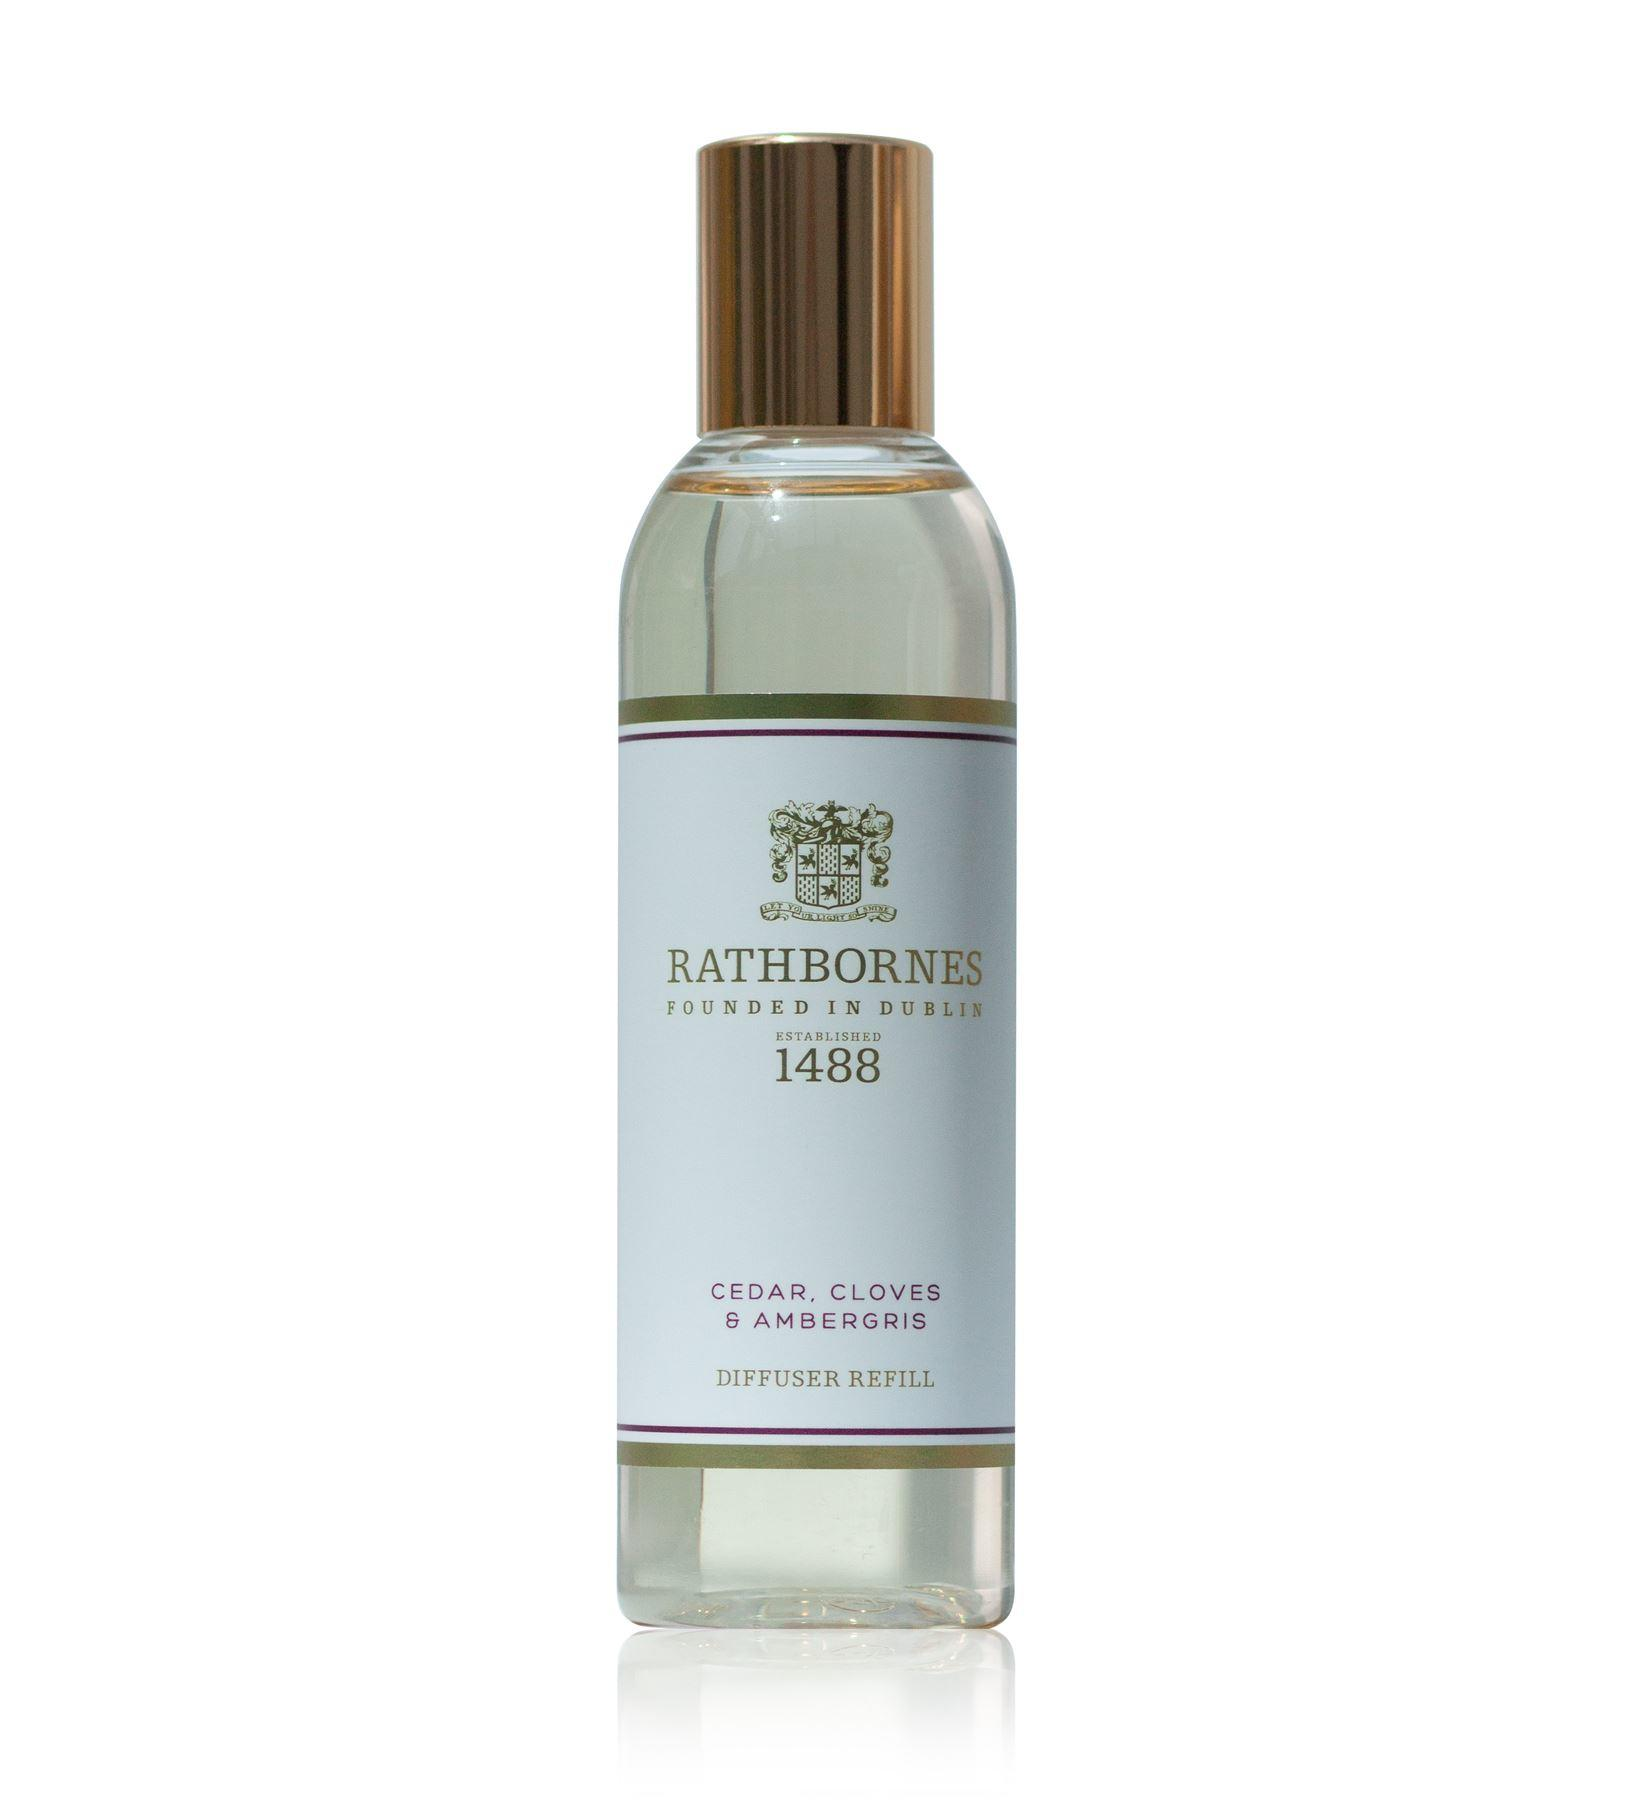 Rathbornes 1488 Cedar, Cloves & Ambergris Scented Reed Diffuser Refill Oil